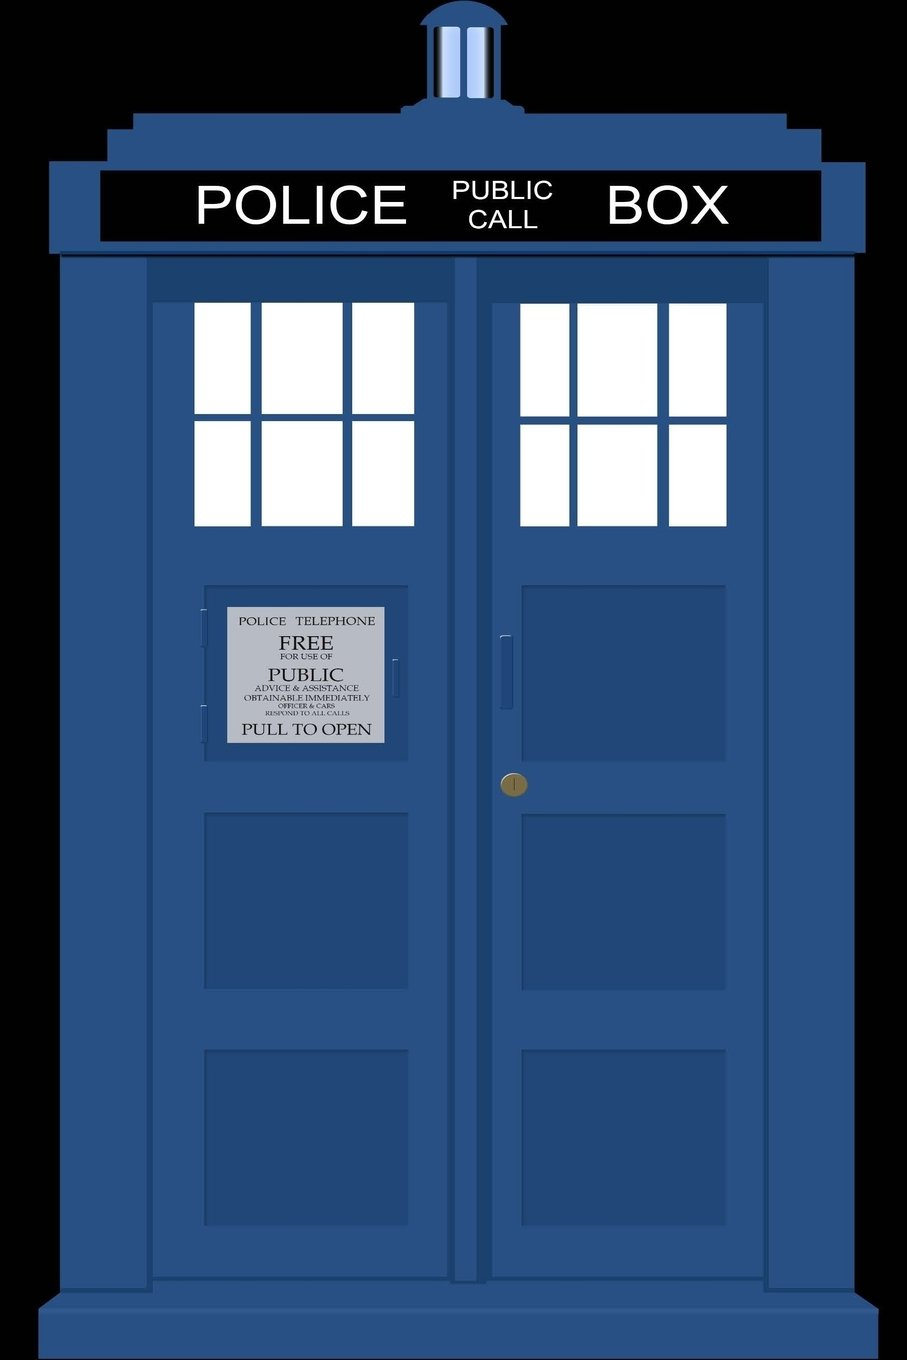 Download Notebook: Police Box - Bespoke, personalised notebook. Contact us if you would like your own image and name on a notebook or diary pdf